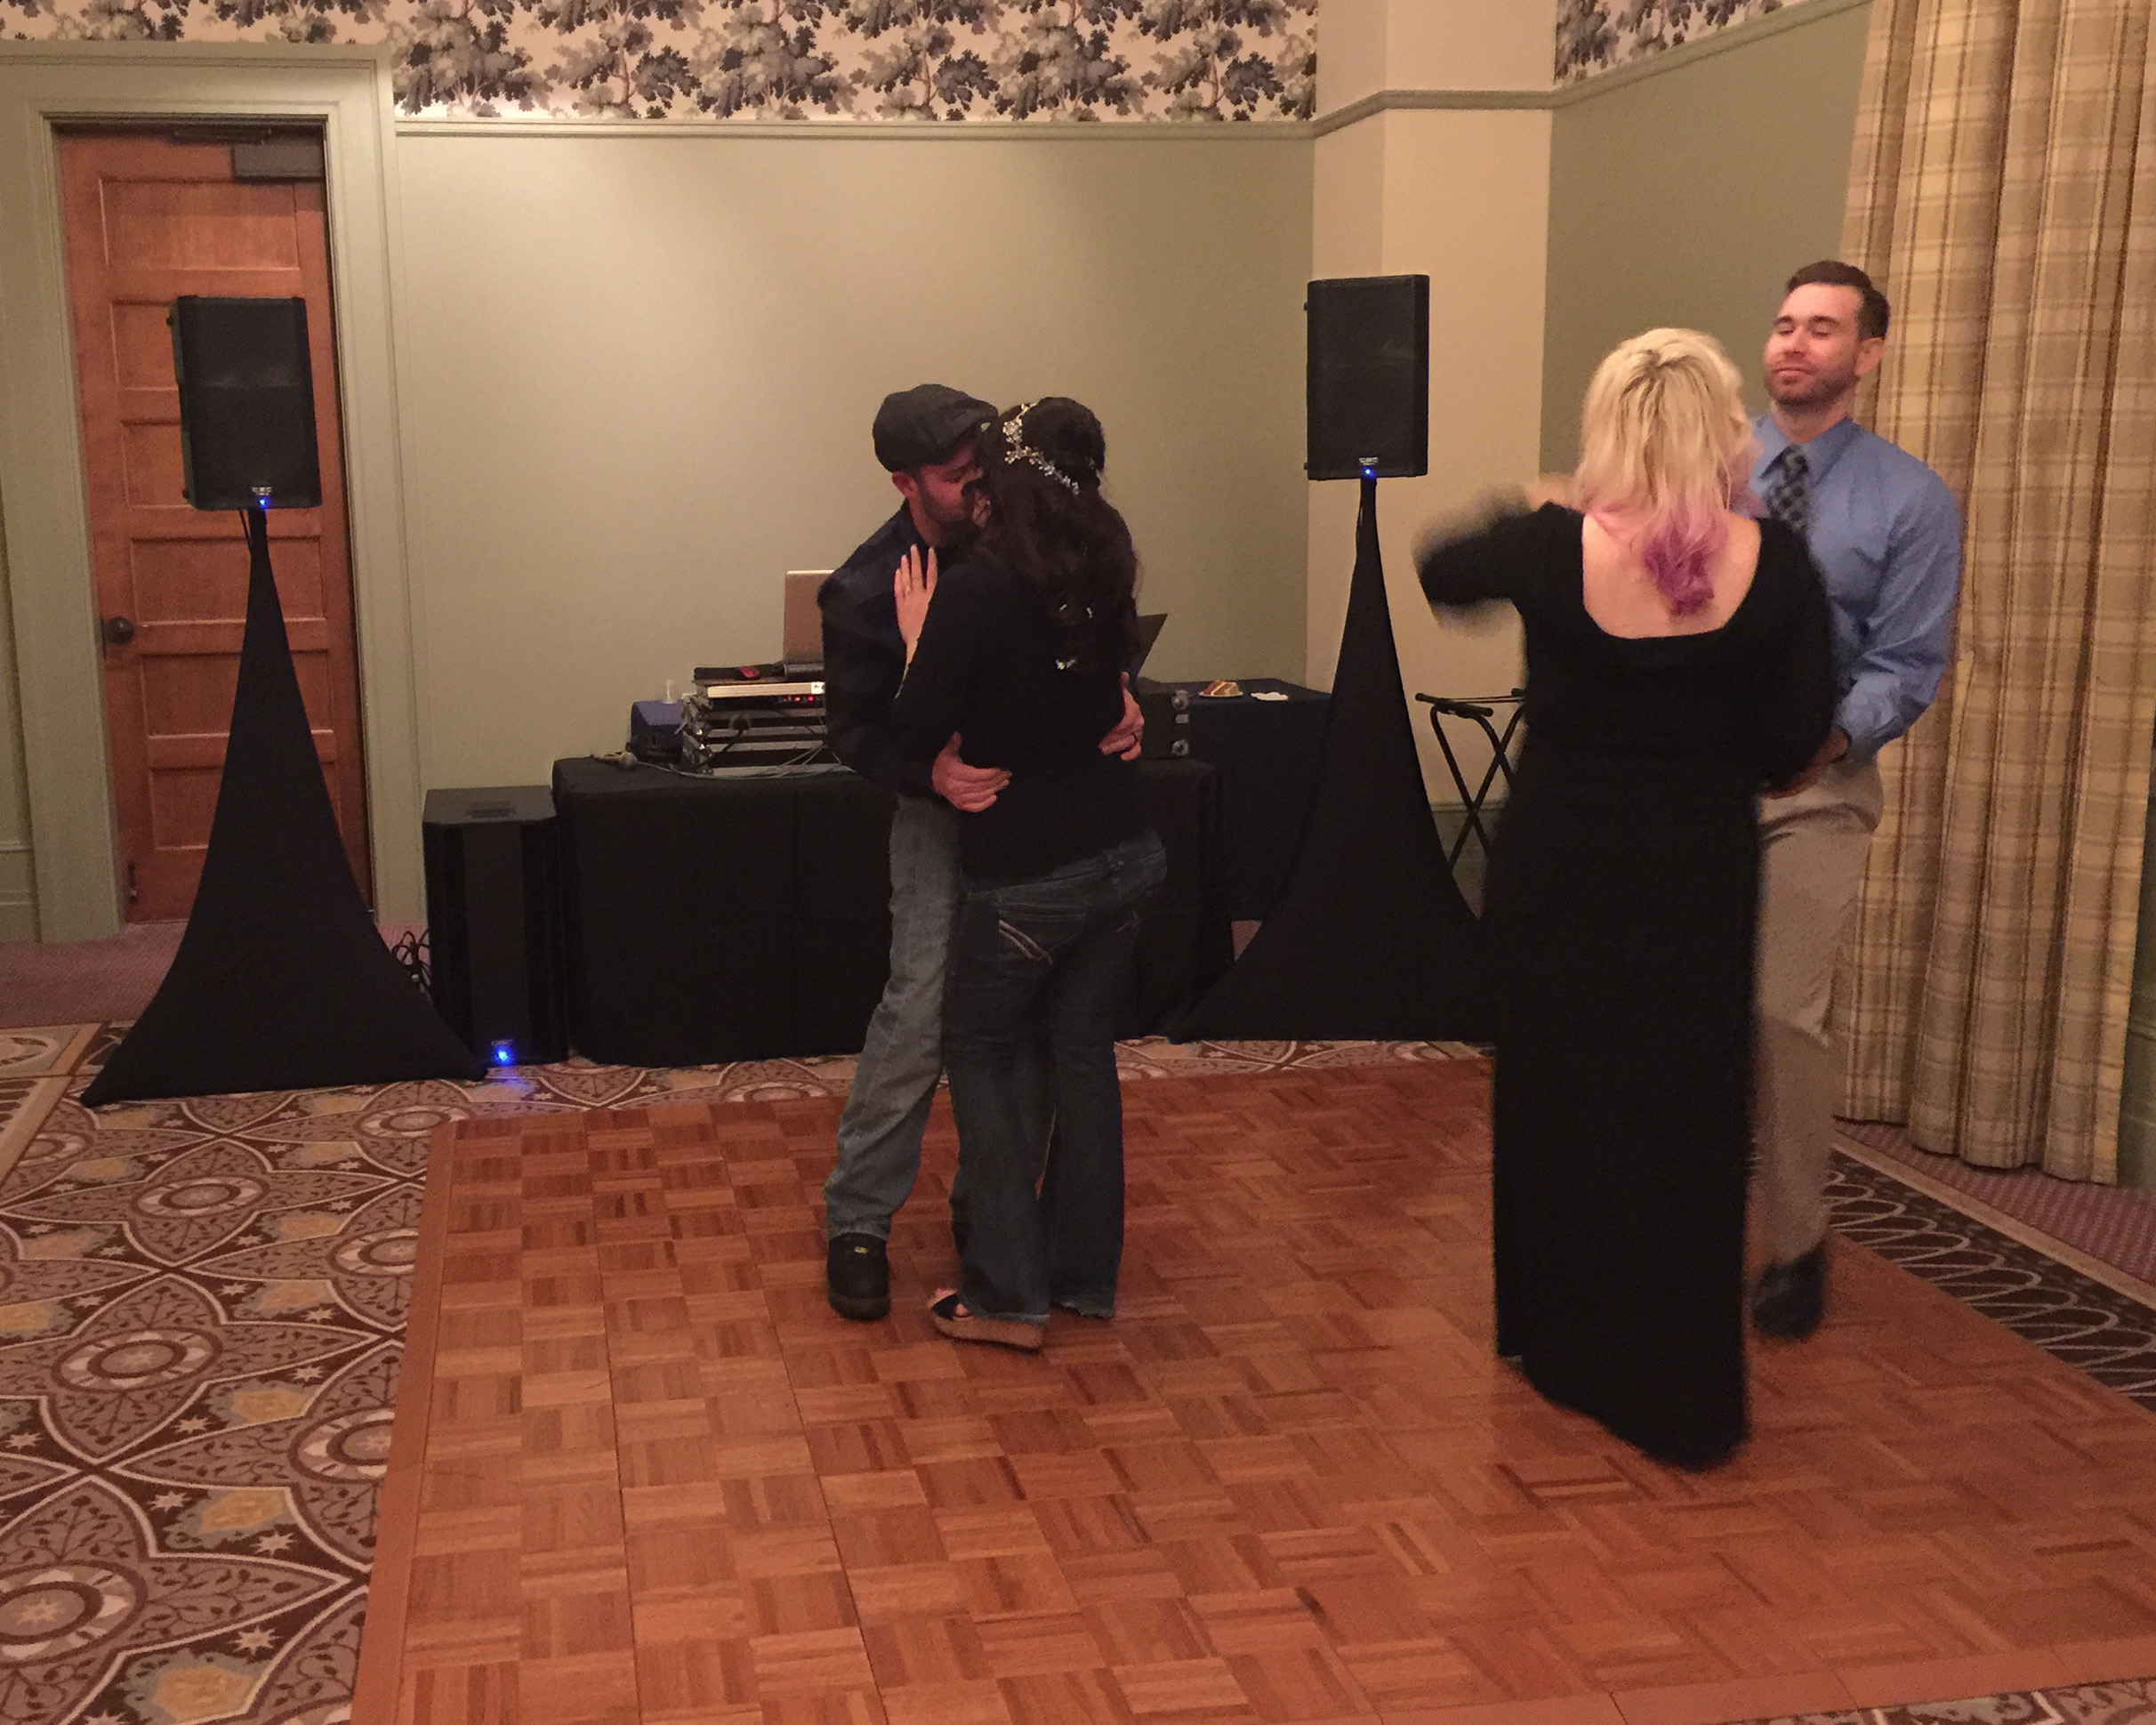 Here the bride, groom and the sister of the bride and her boyfriend have the last dance of the evening. And, lived happily ever after!!!!